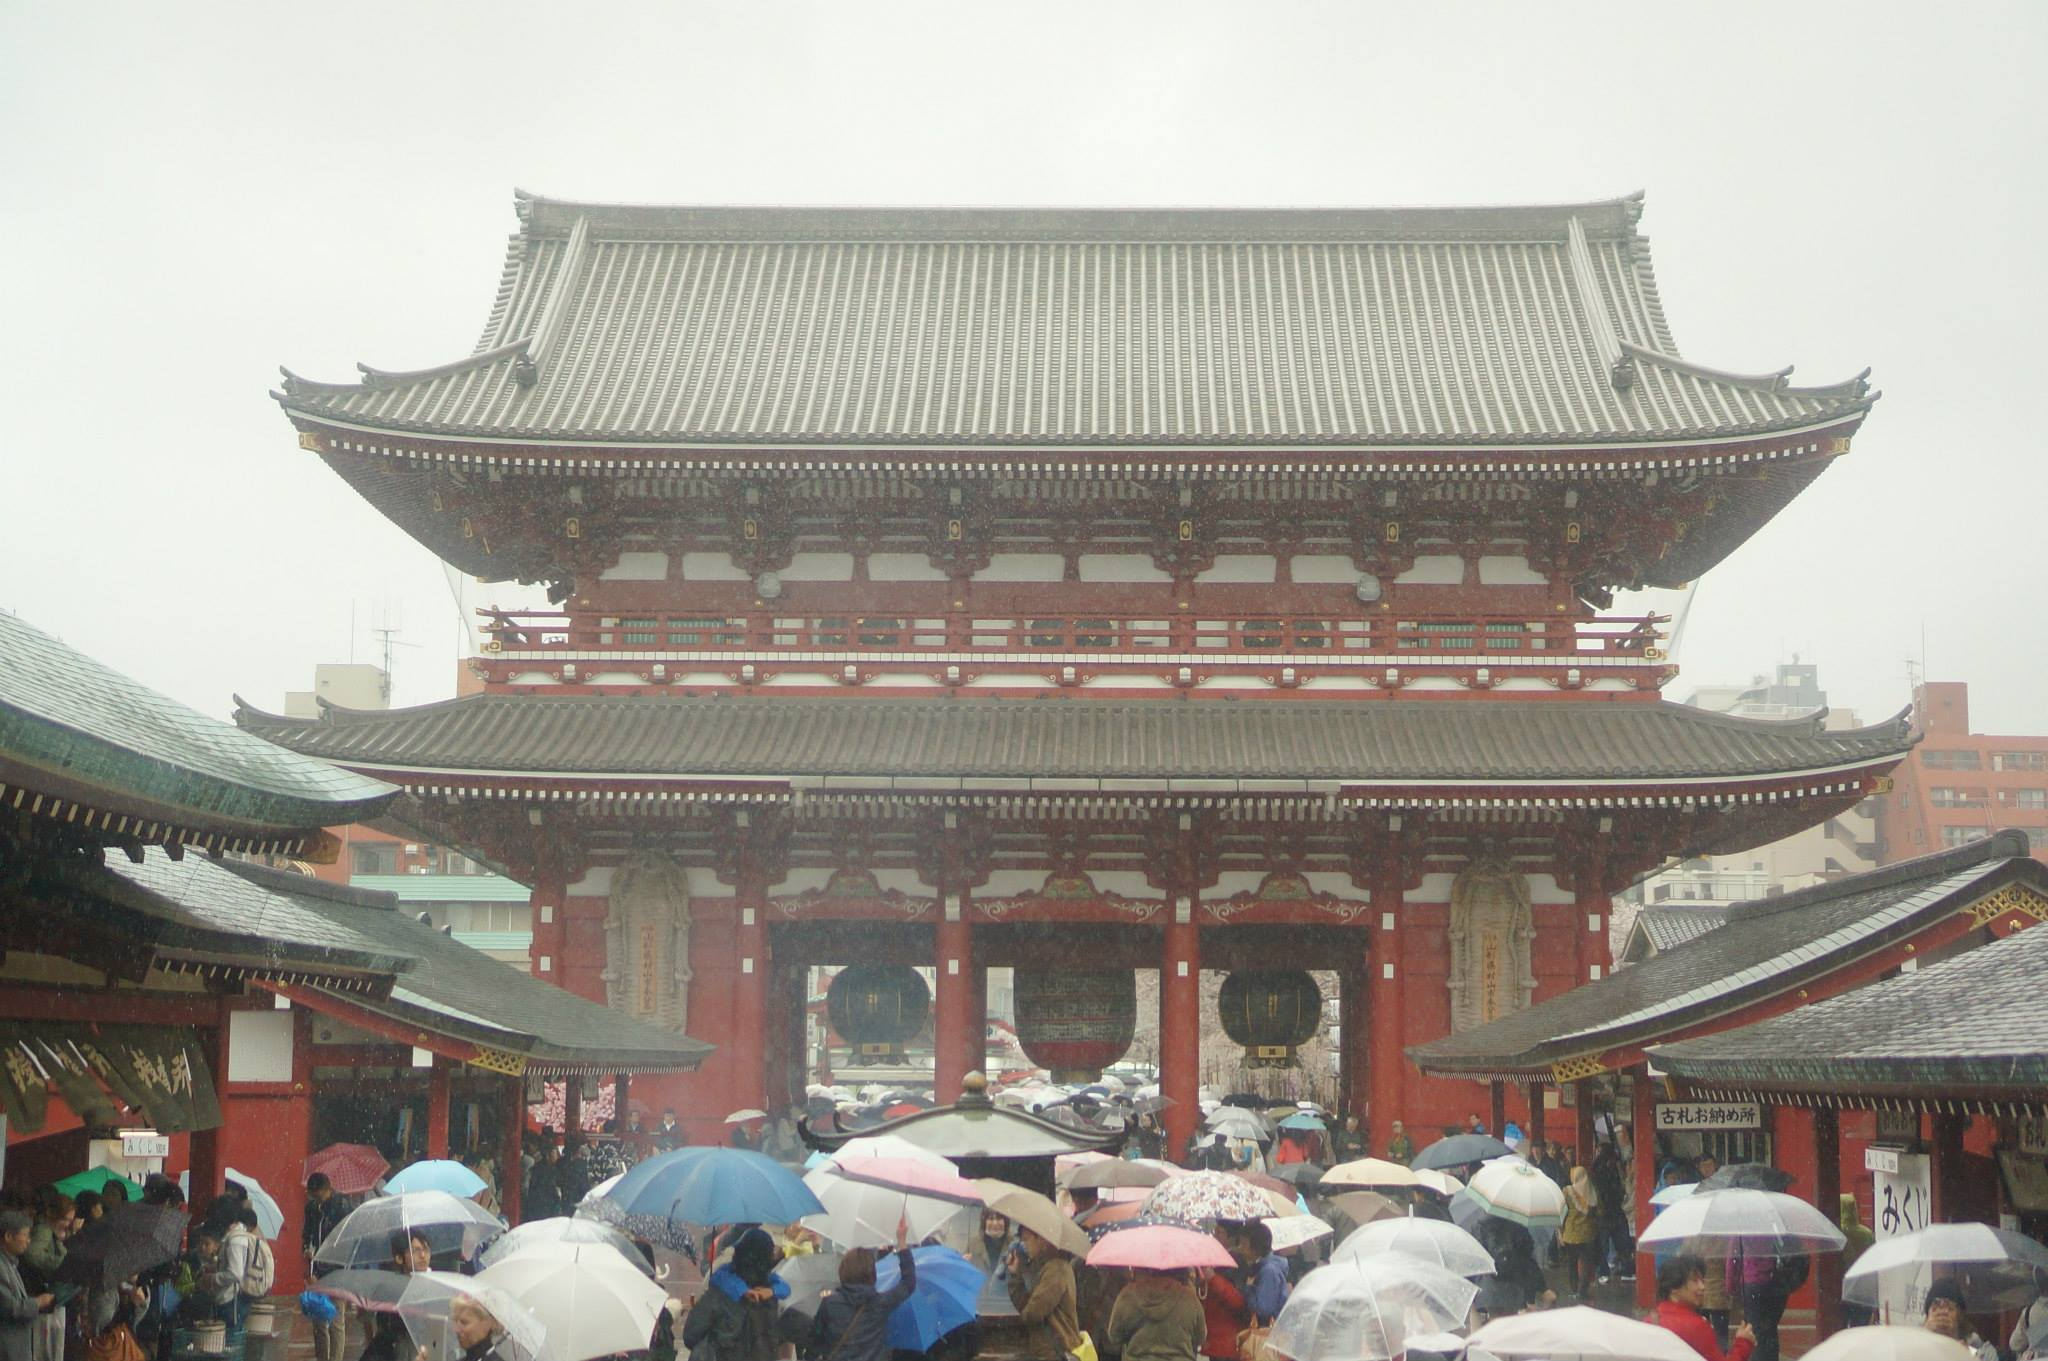 More Asakusa Shrine